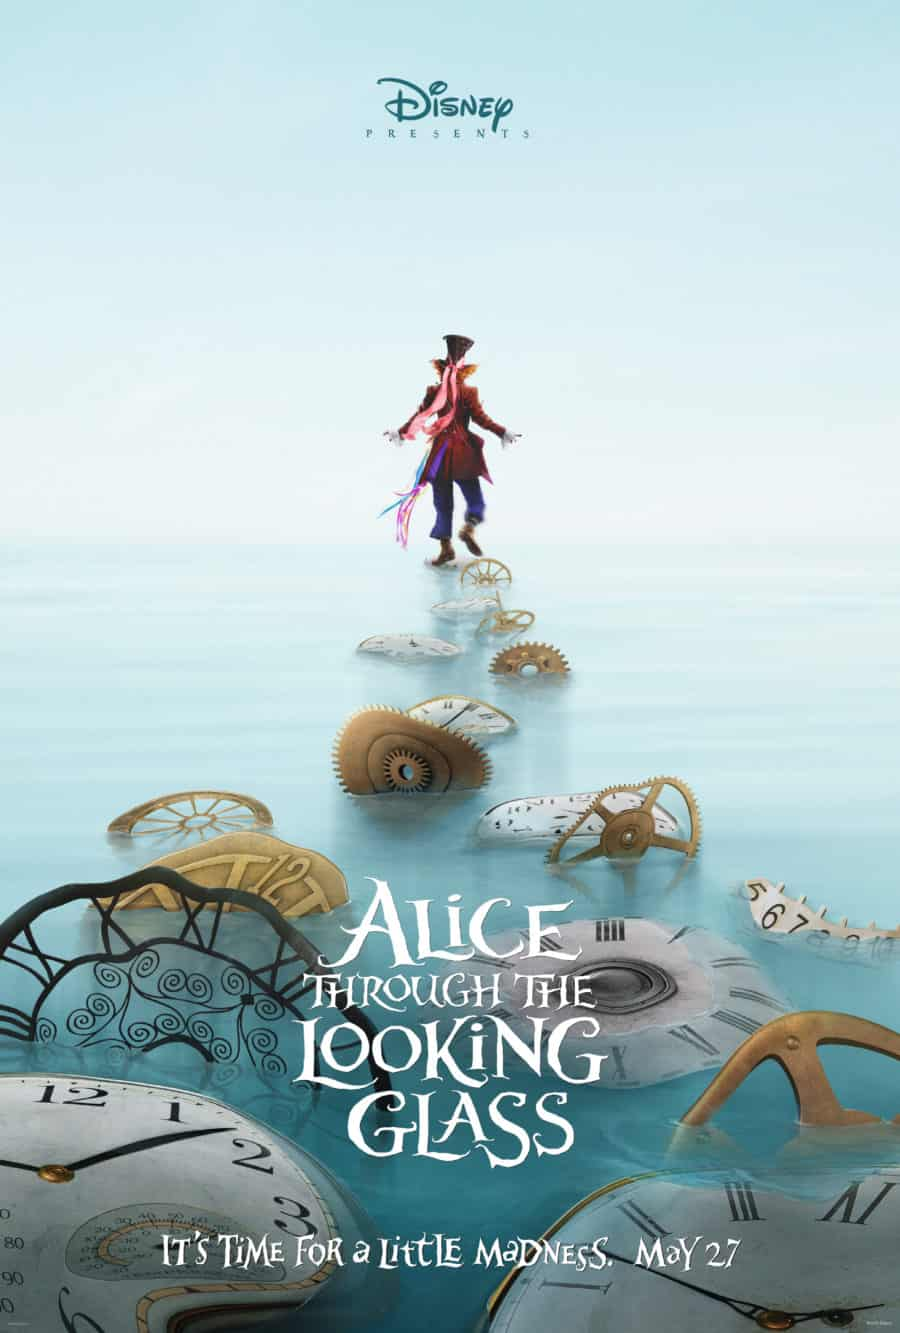 Alice Through The Looking Glass - It's Time For A Little Madness!